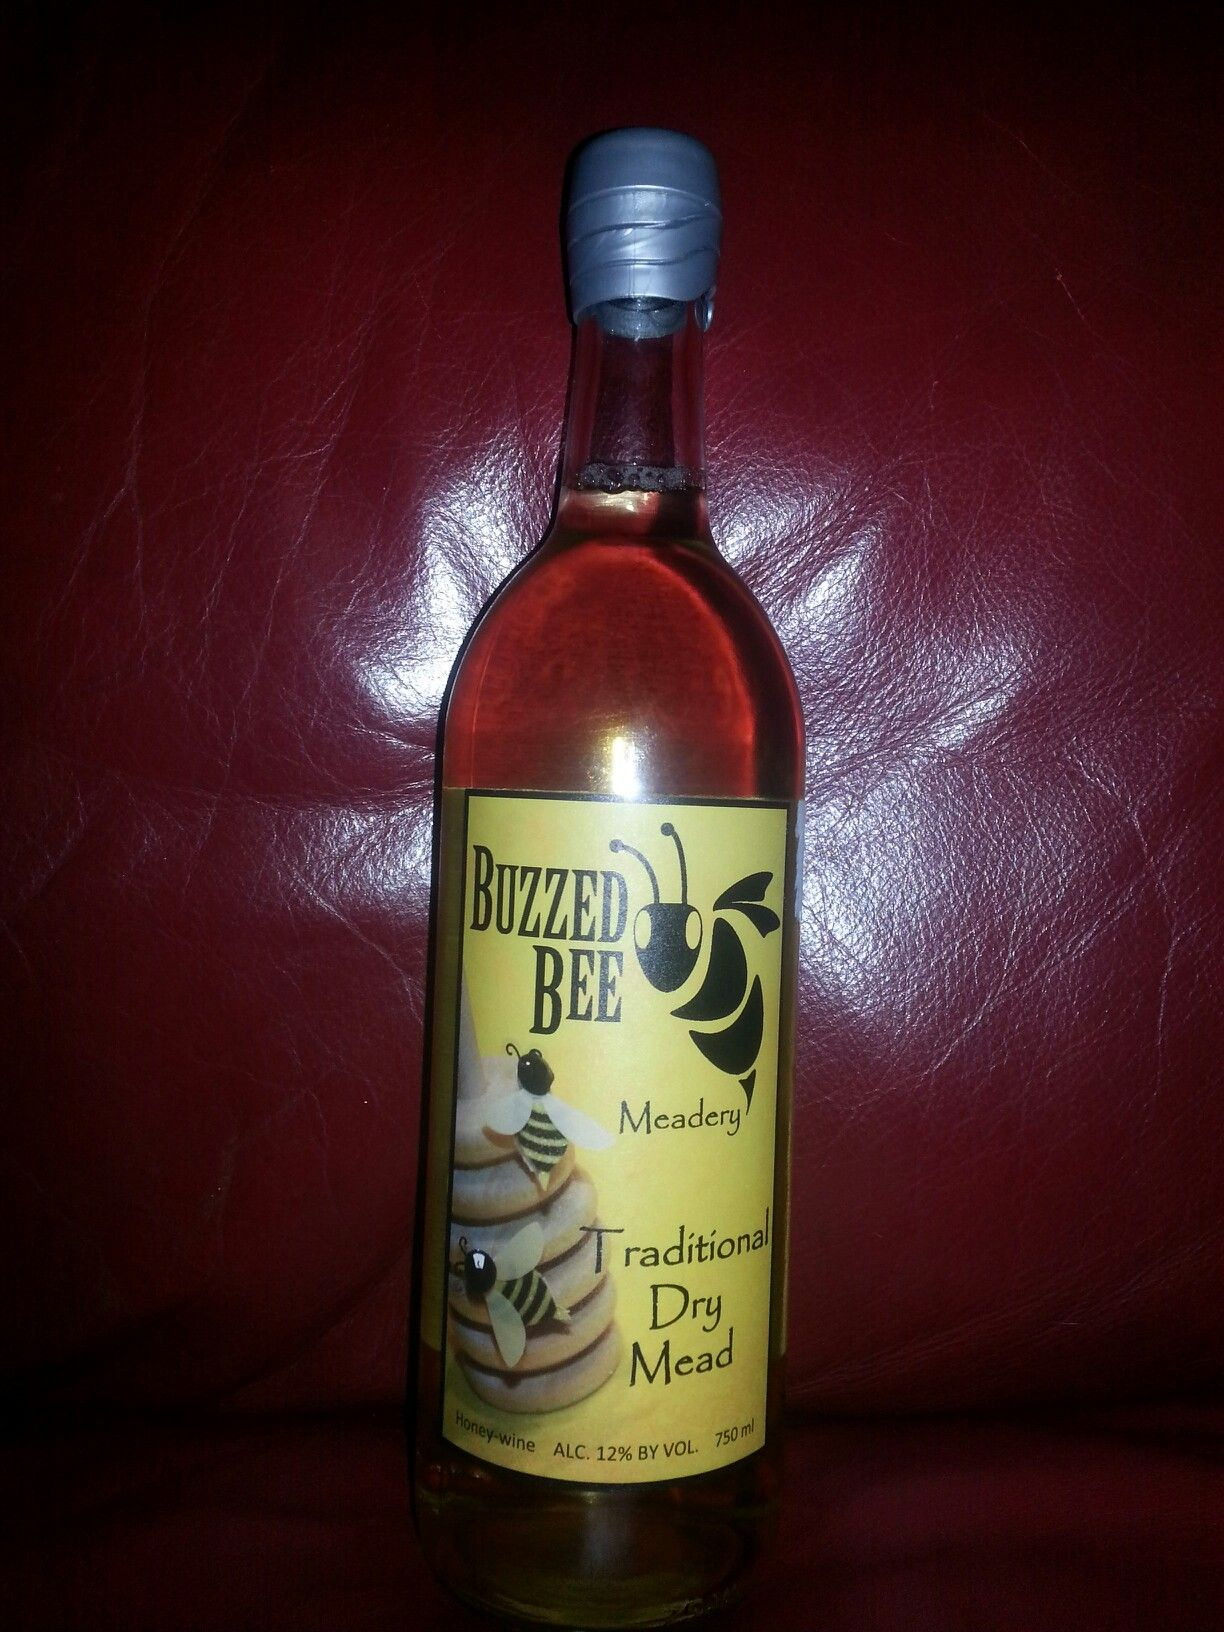 Buzzed Bee Traditional Dry Mead by Buzzed Bee Meandery, Inc. of Melbourne, iowa